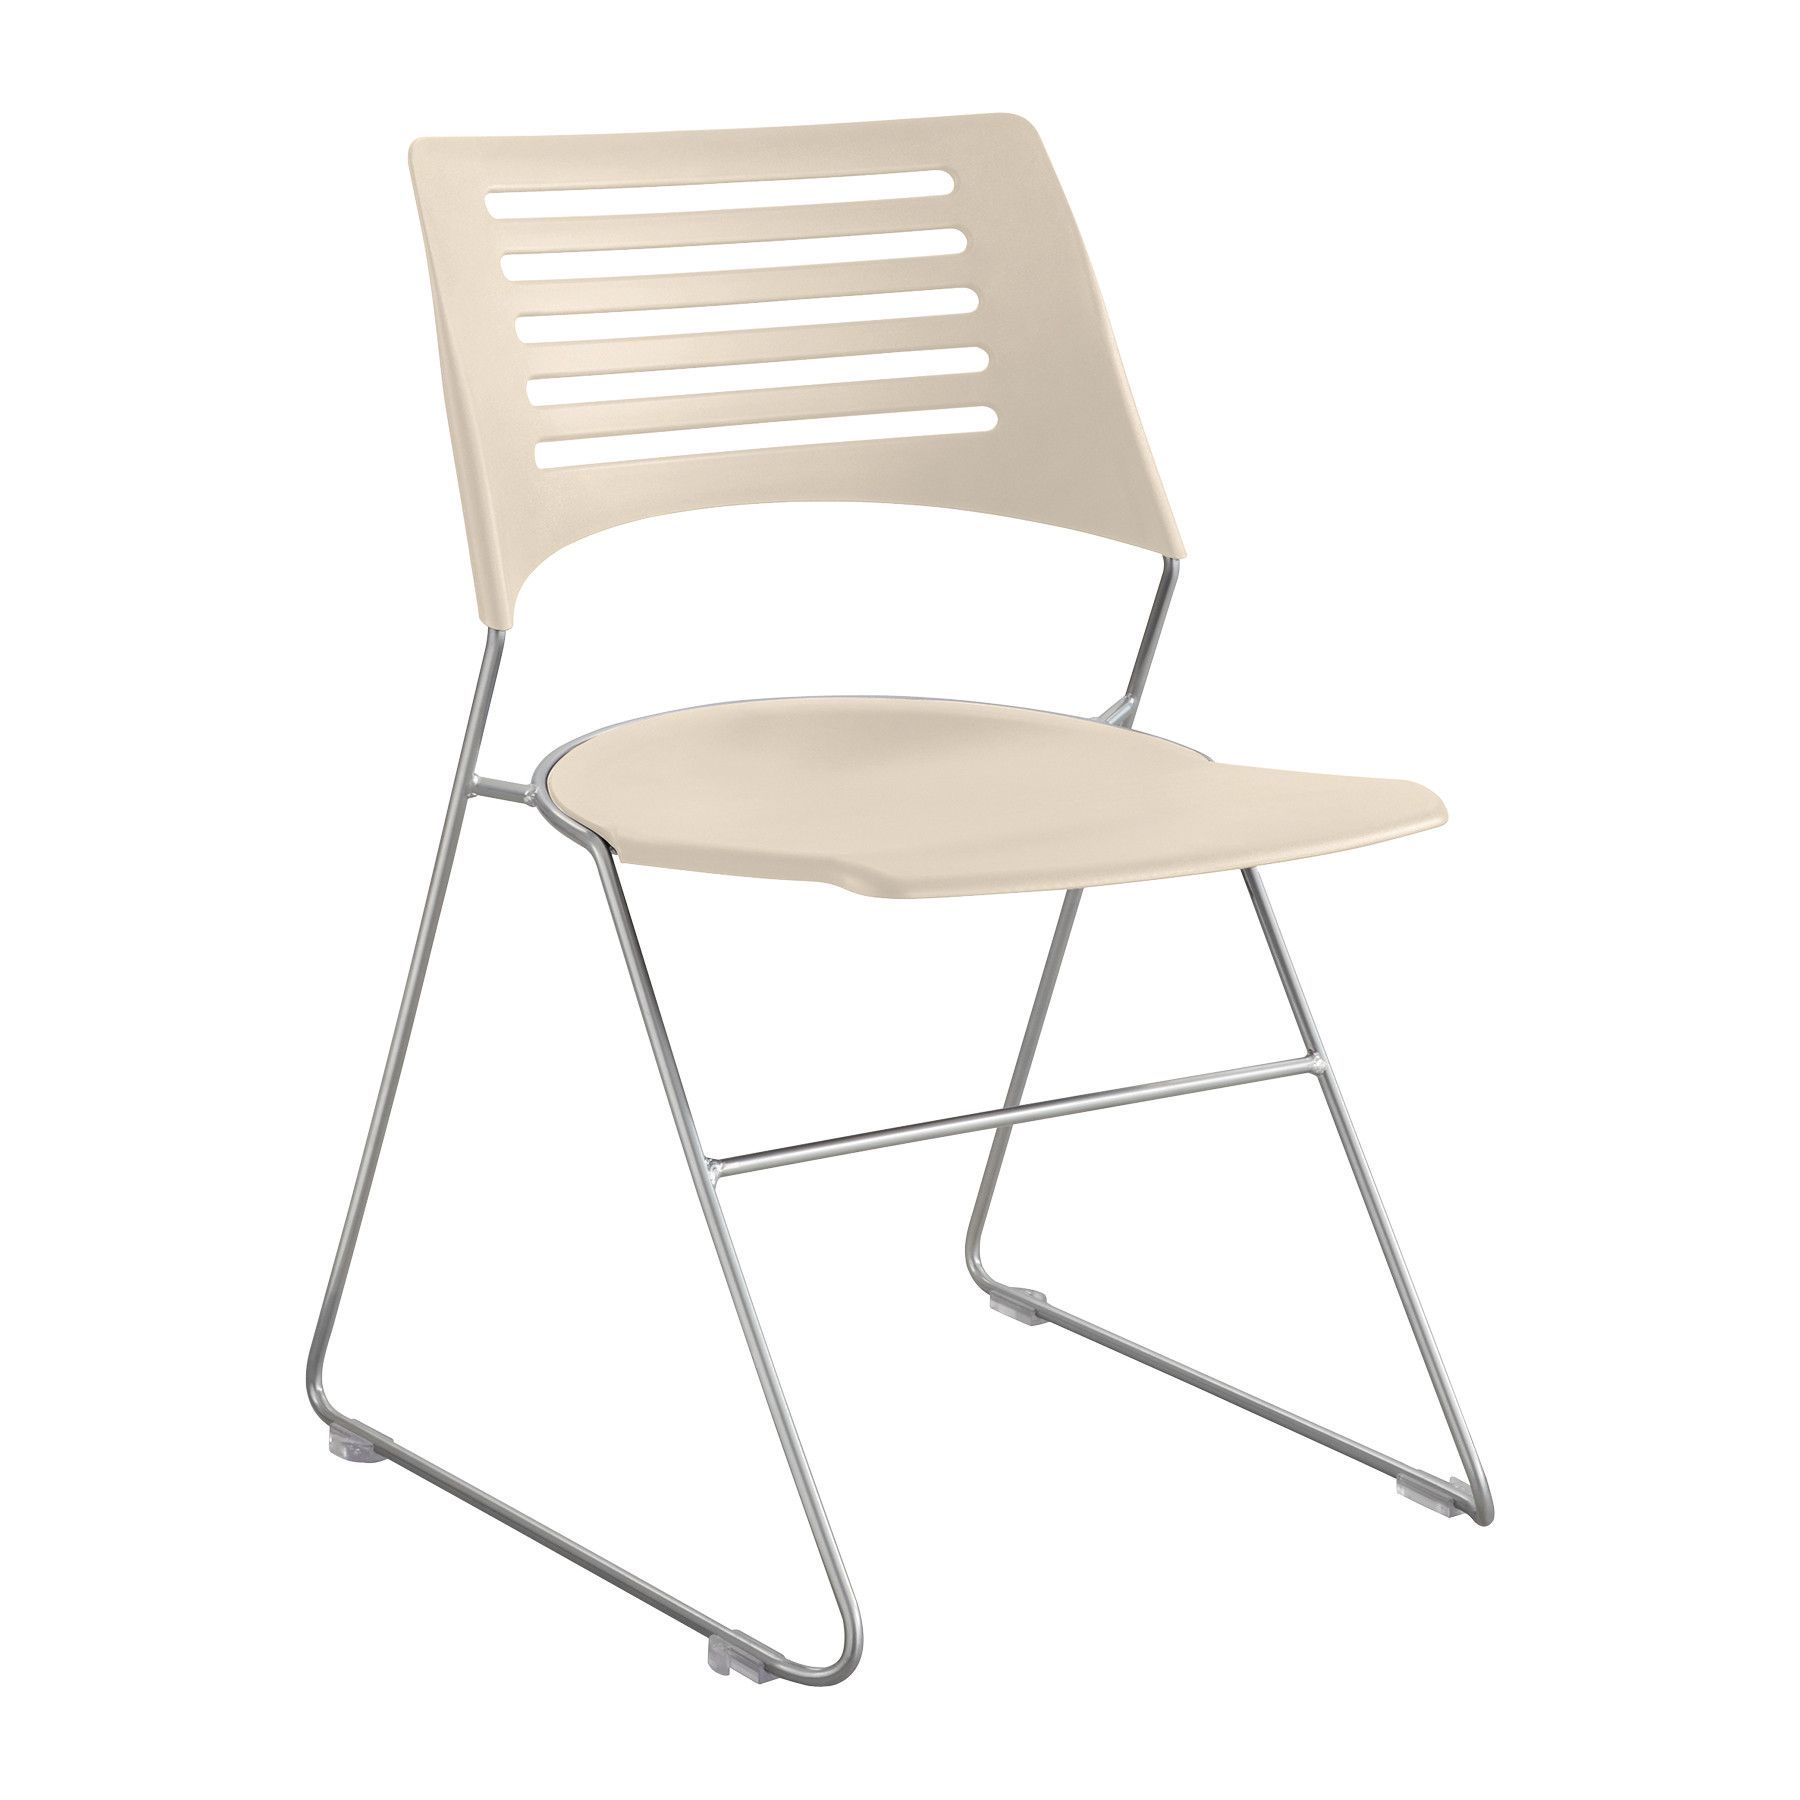 Pique Armless Office Stacking Chair (Set of 4)